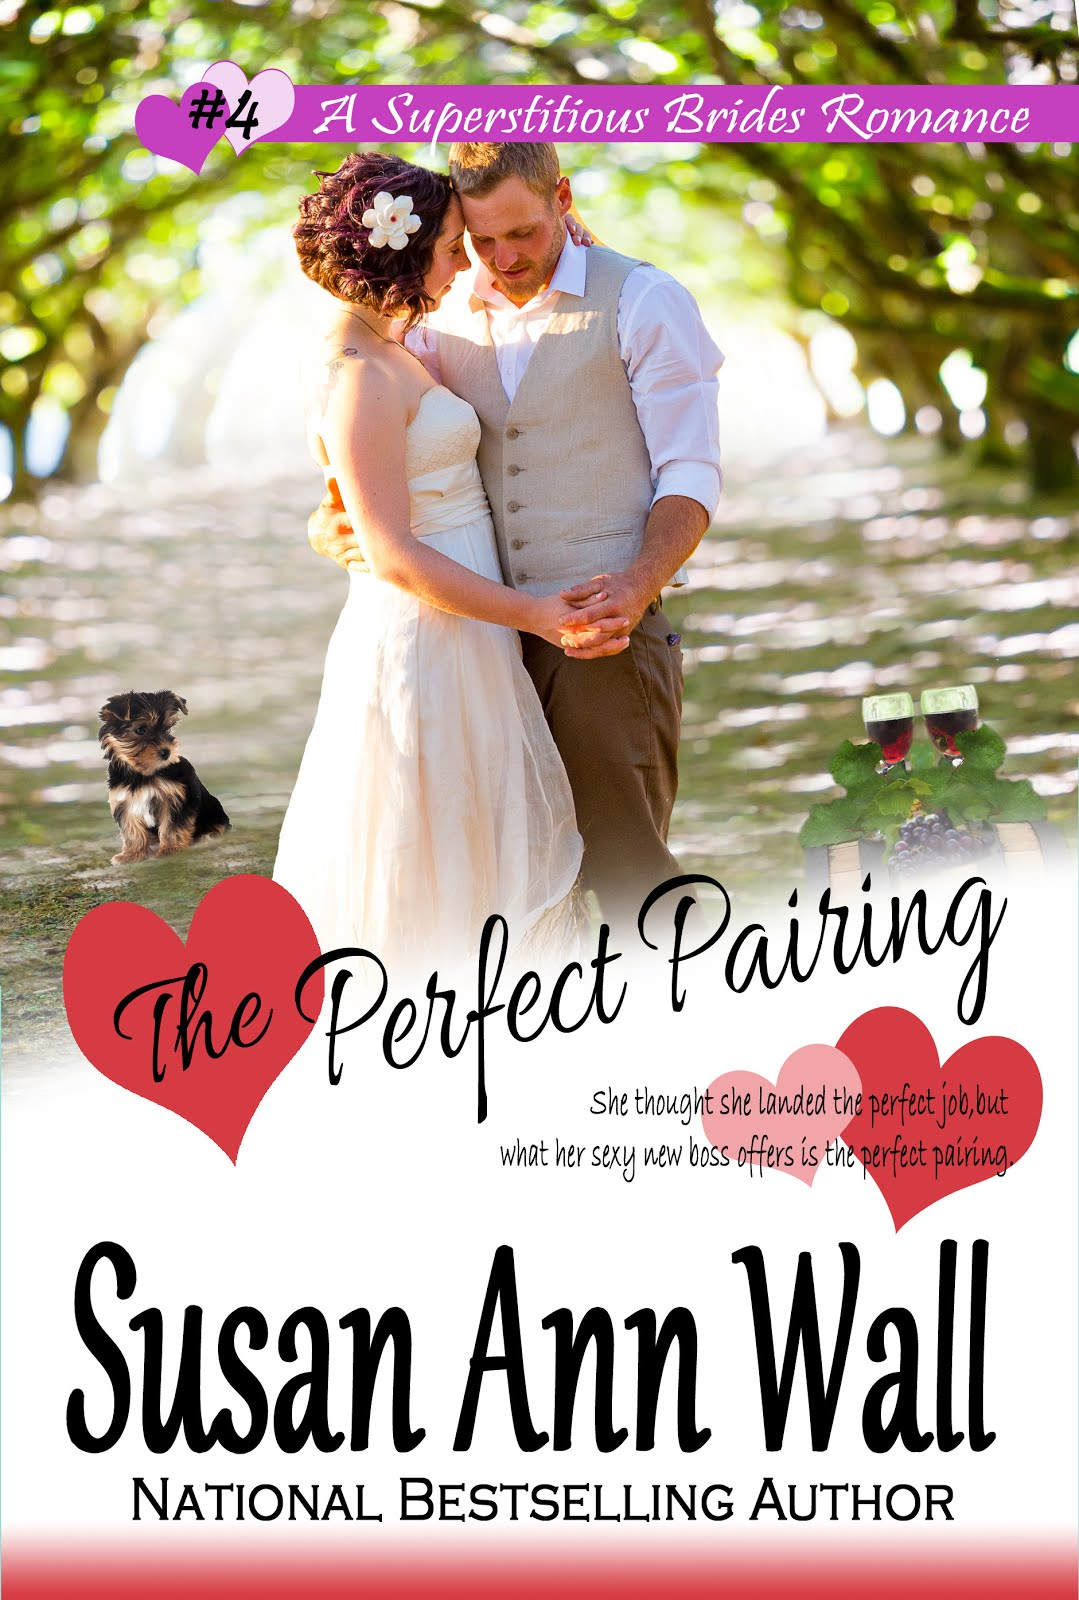 The Perfect Pairing by Susan Ann Wall